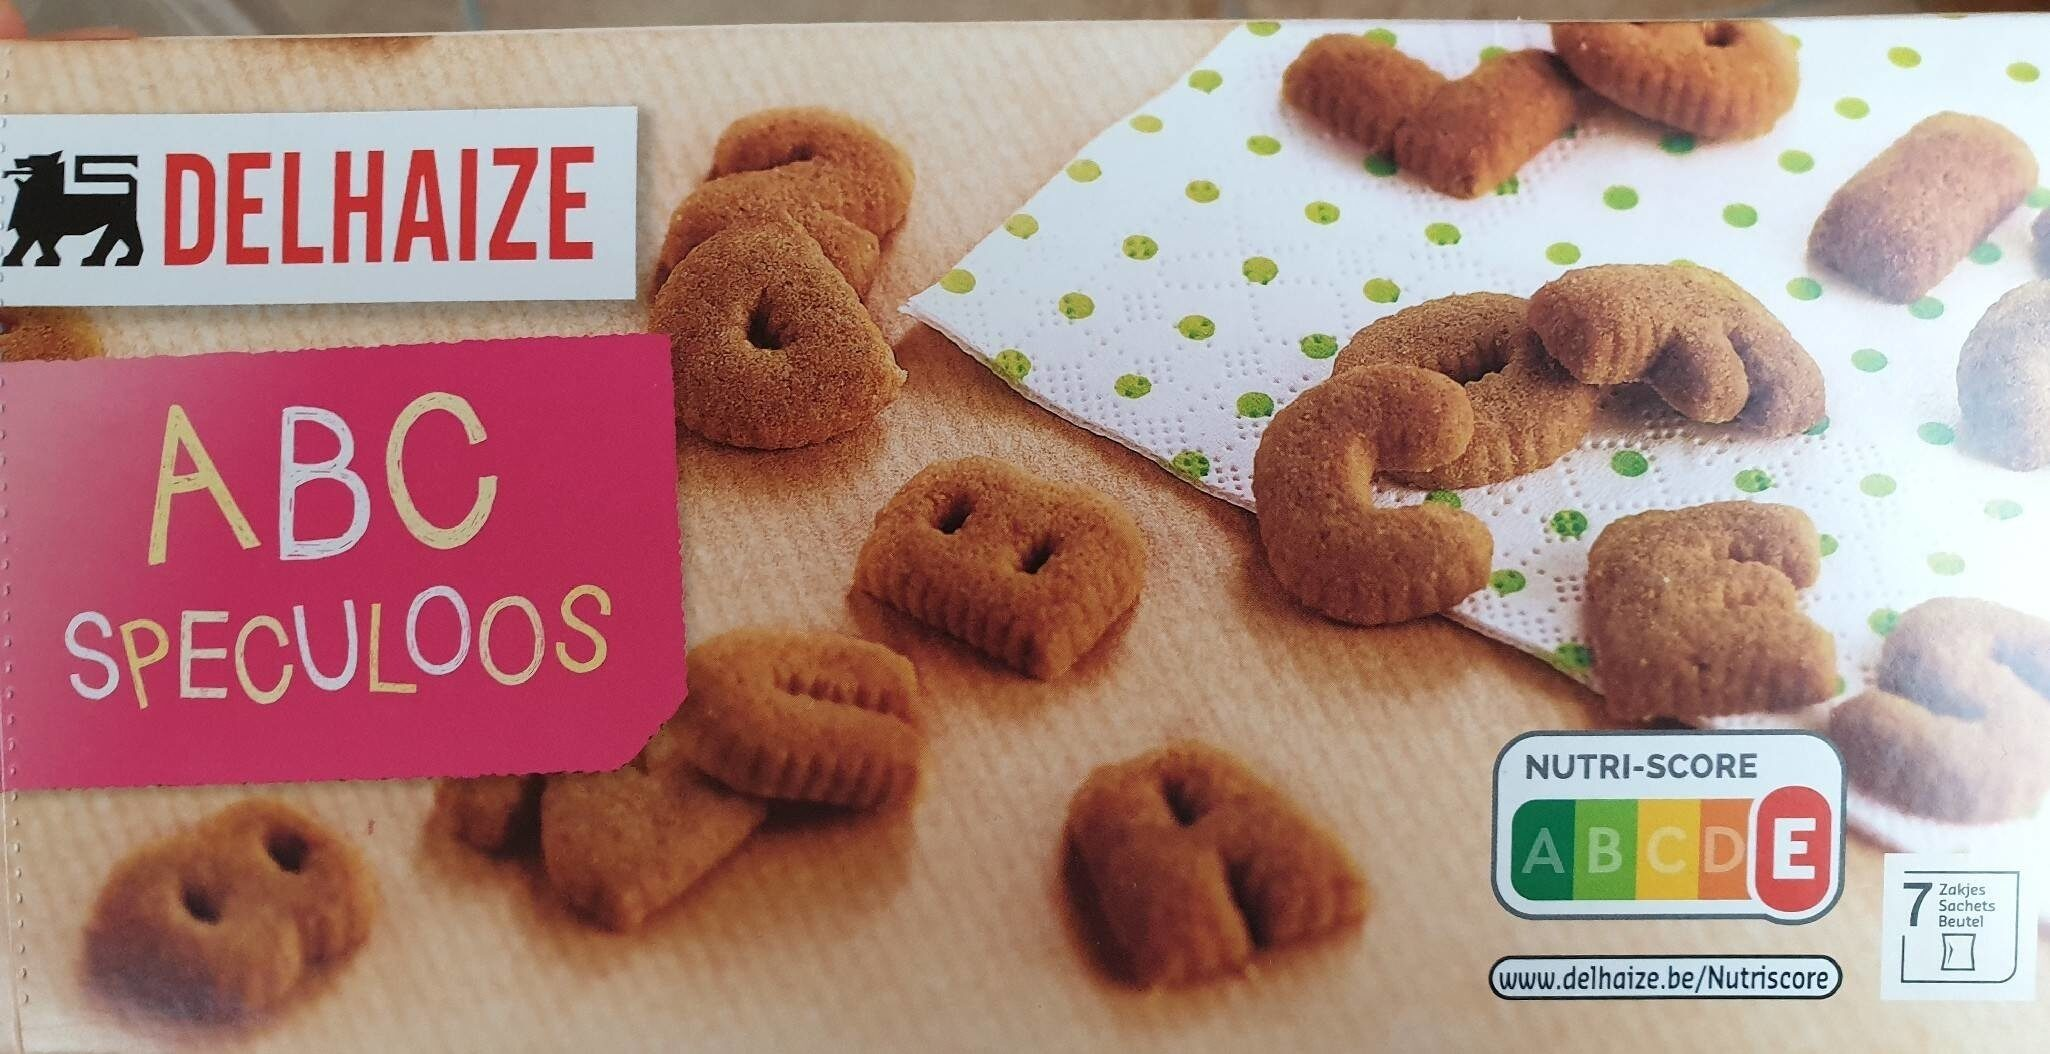 ABC Speculoos - Product